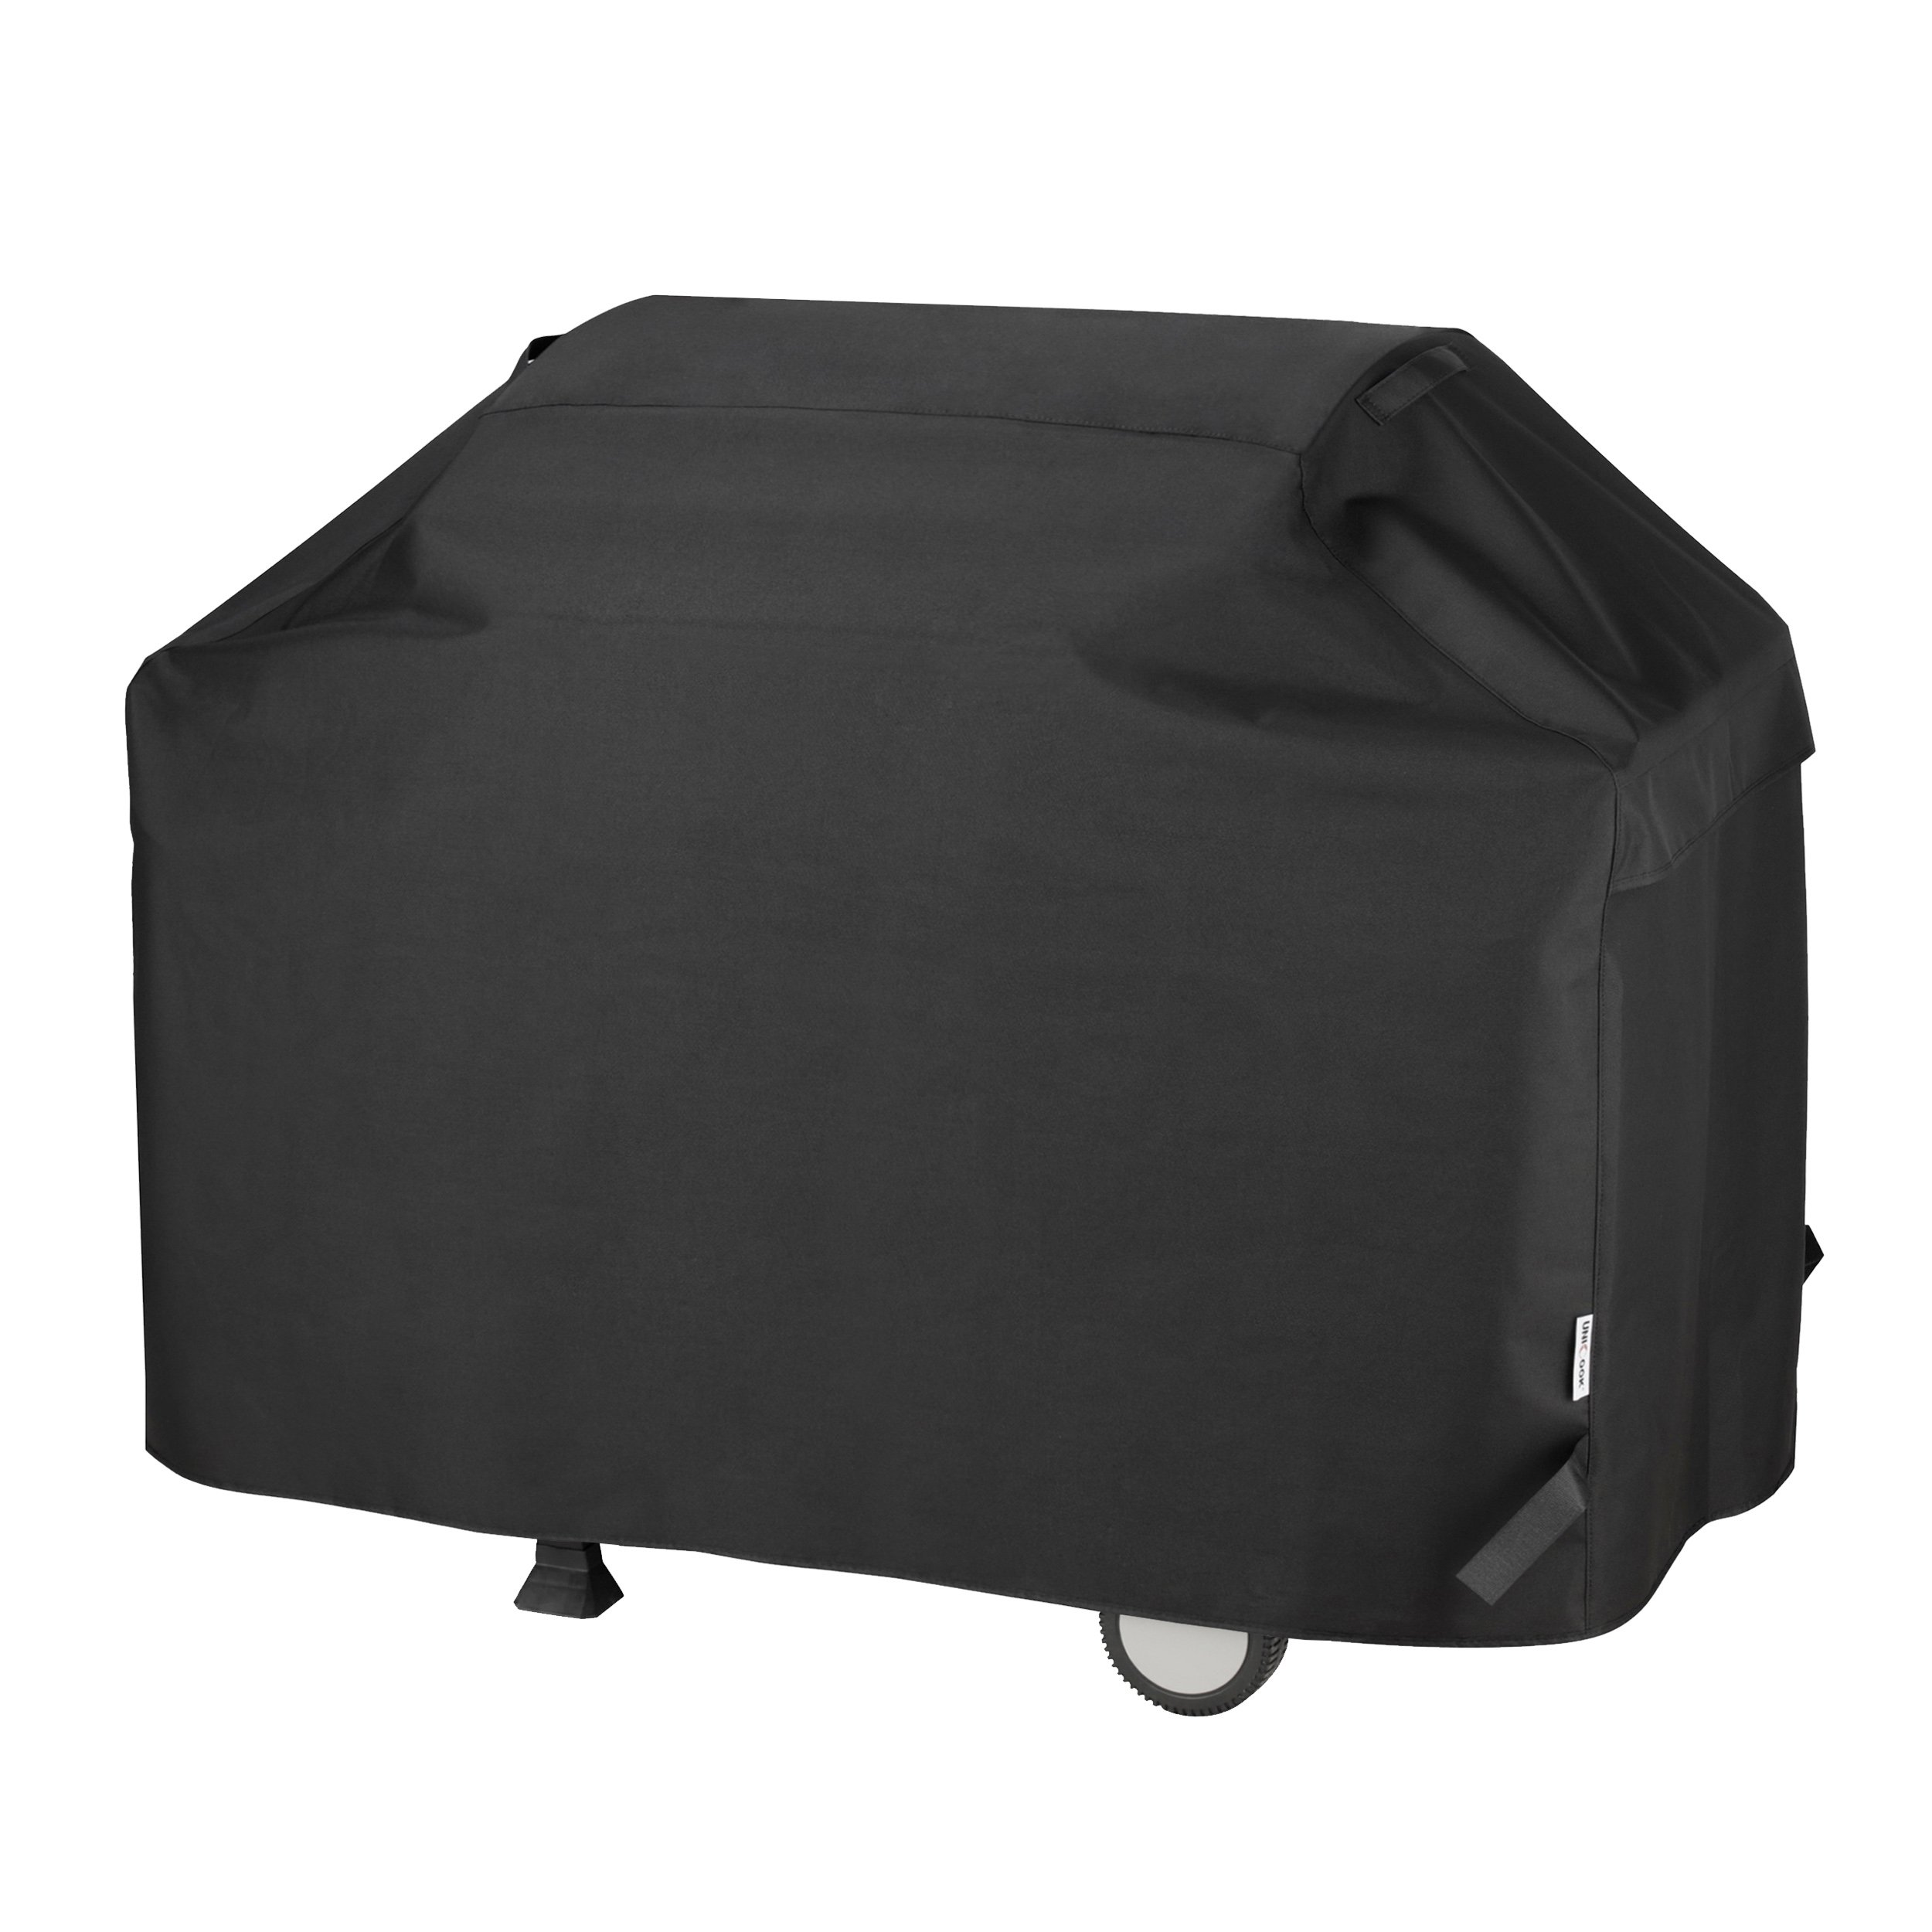 UNICOOK Heavy Duty Waterproof Barbecue Gas Grill Cover, 65-inch BBQ Cover, Special Fade and UV Resistant Material, Durable and Convenient, Fits Grills of Weber Char-Broil Nexgrill Brinkmann and More by UNICOOK